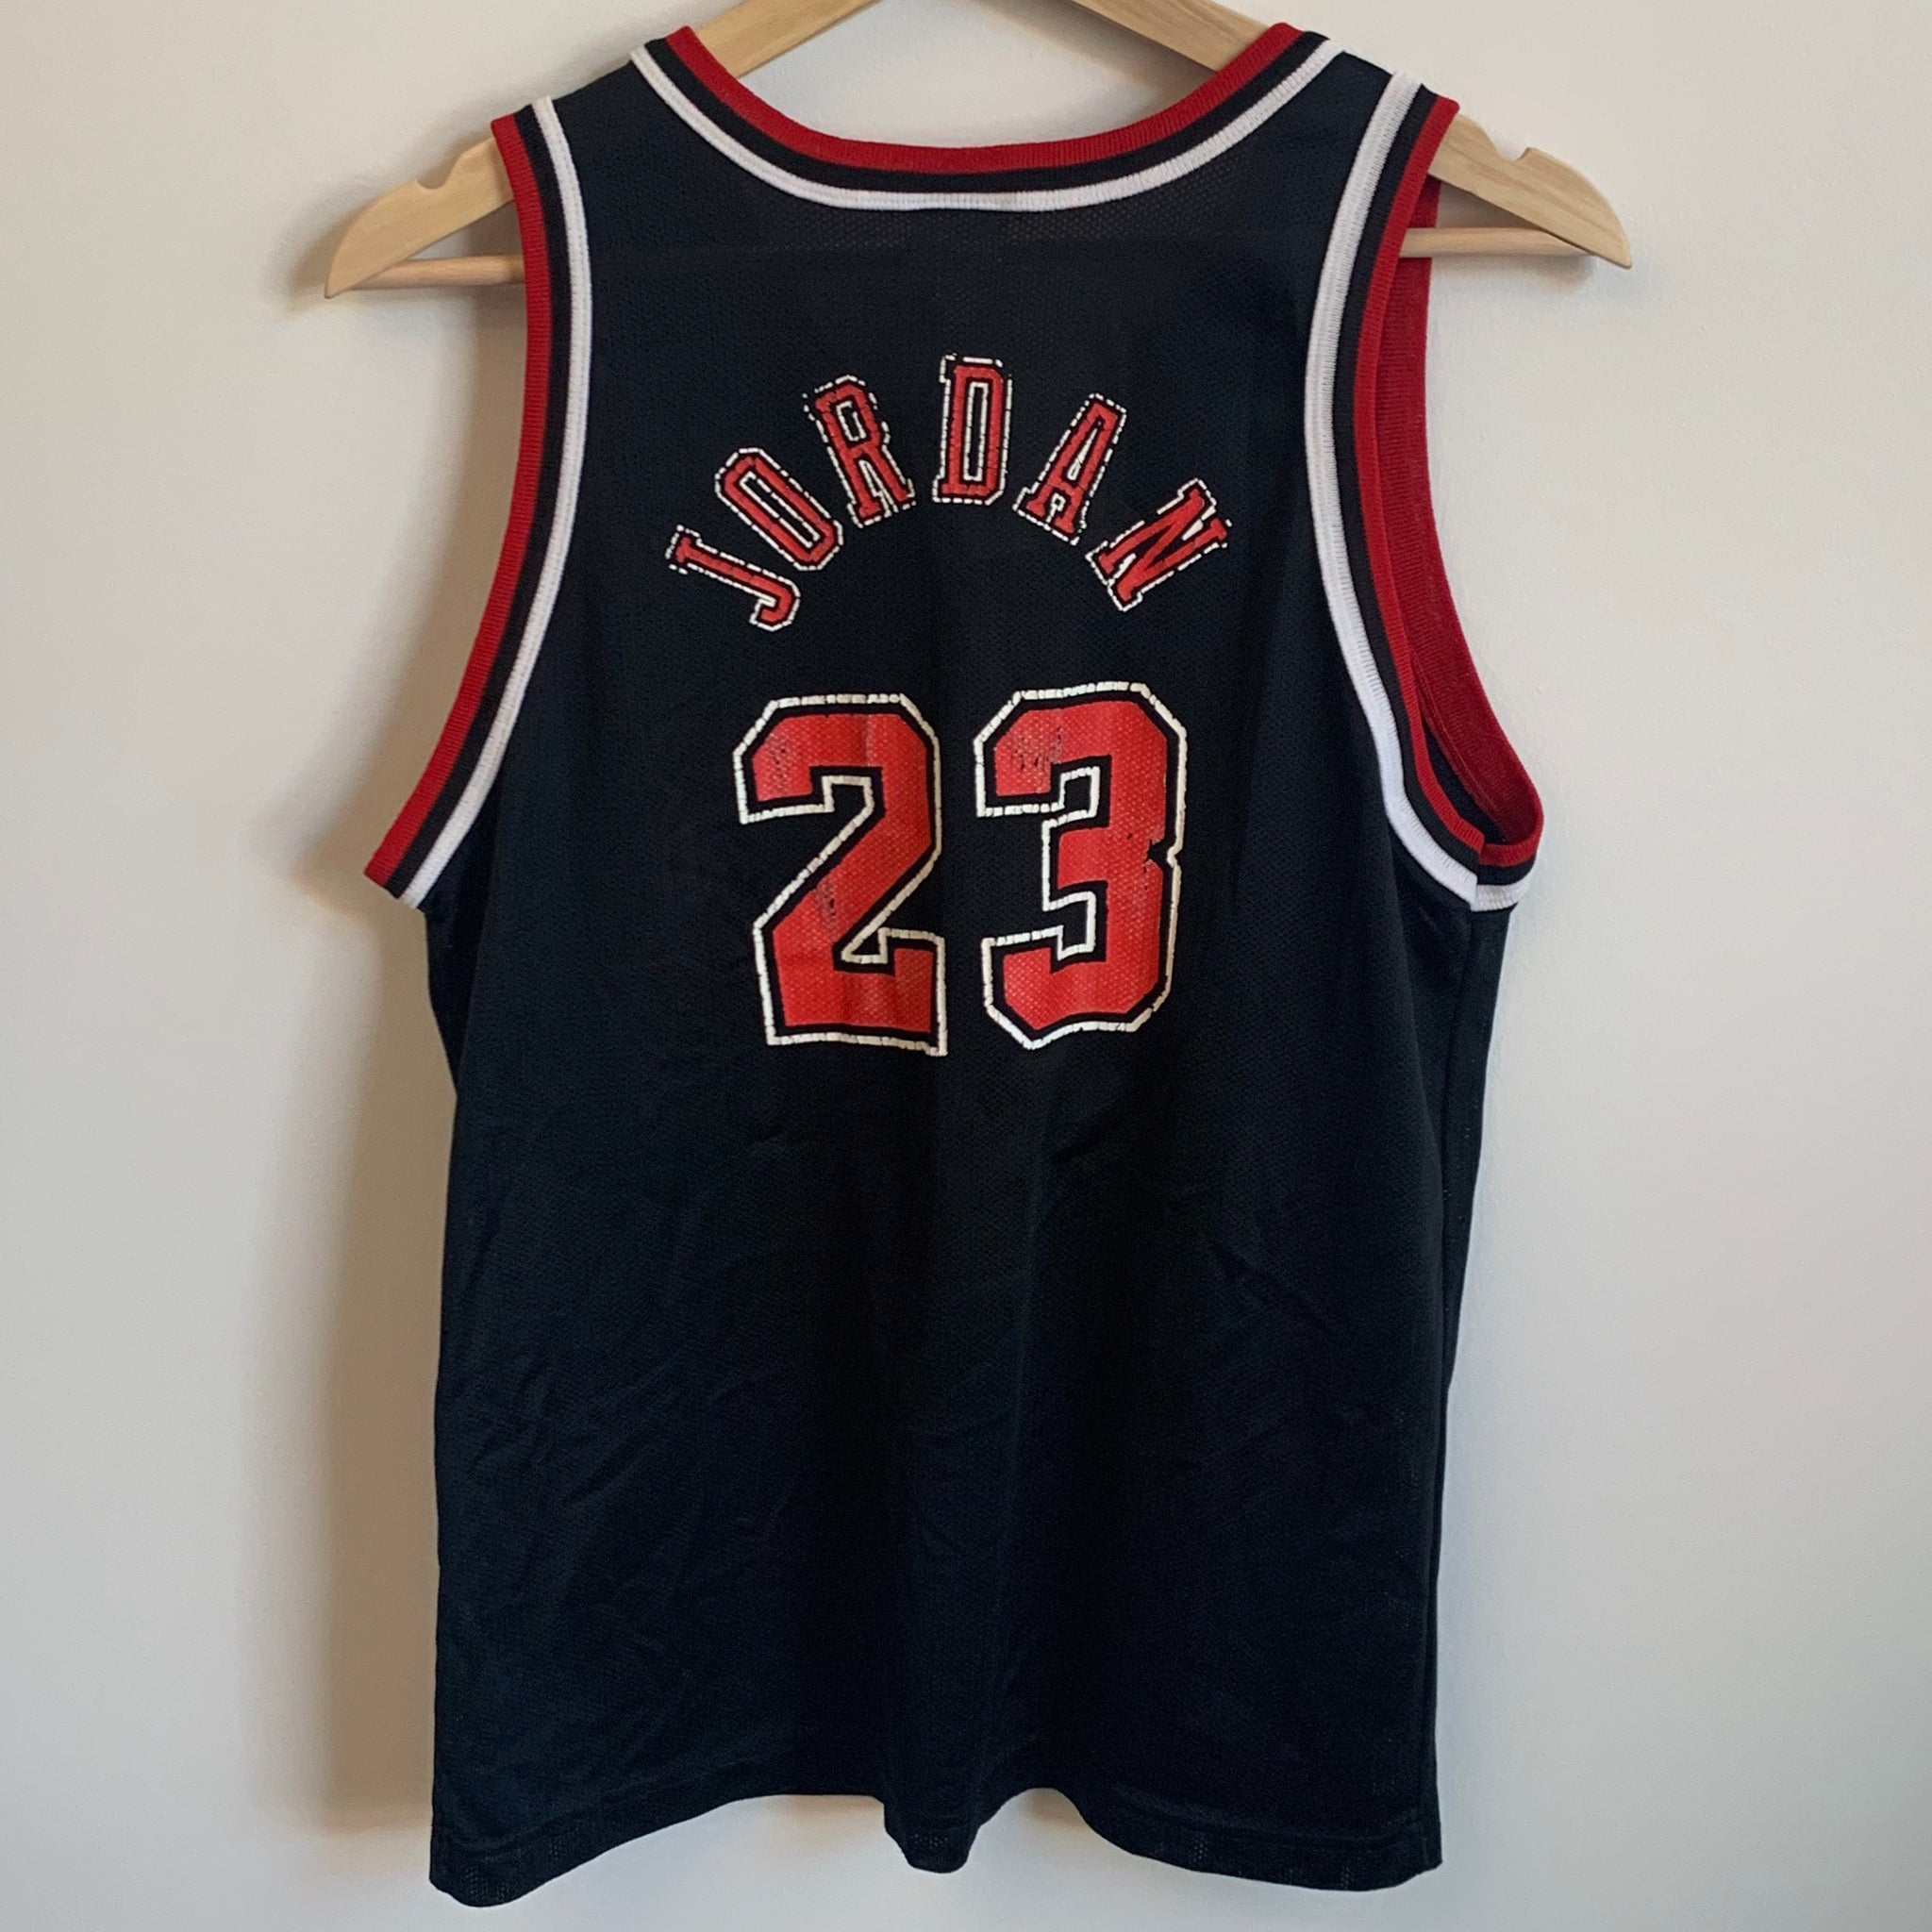 sale retailer db466 48bfc Champion Michael Jordan Chicago Bulls Black Youth Basketball ...